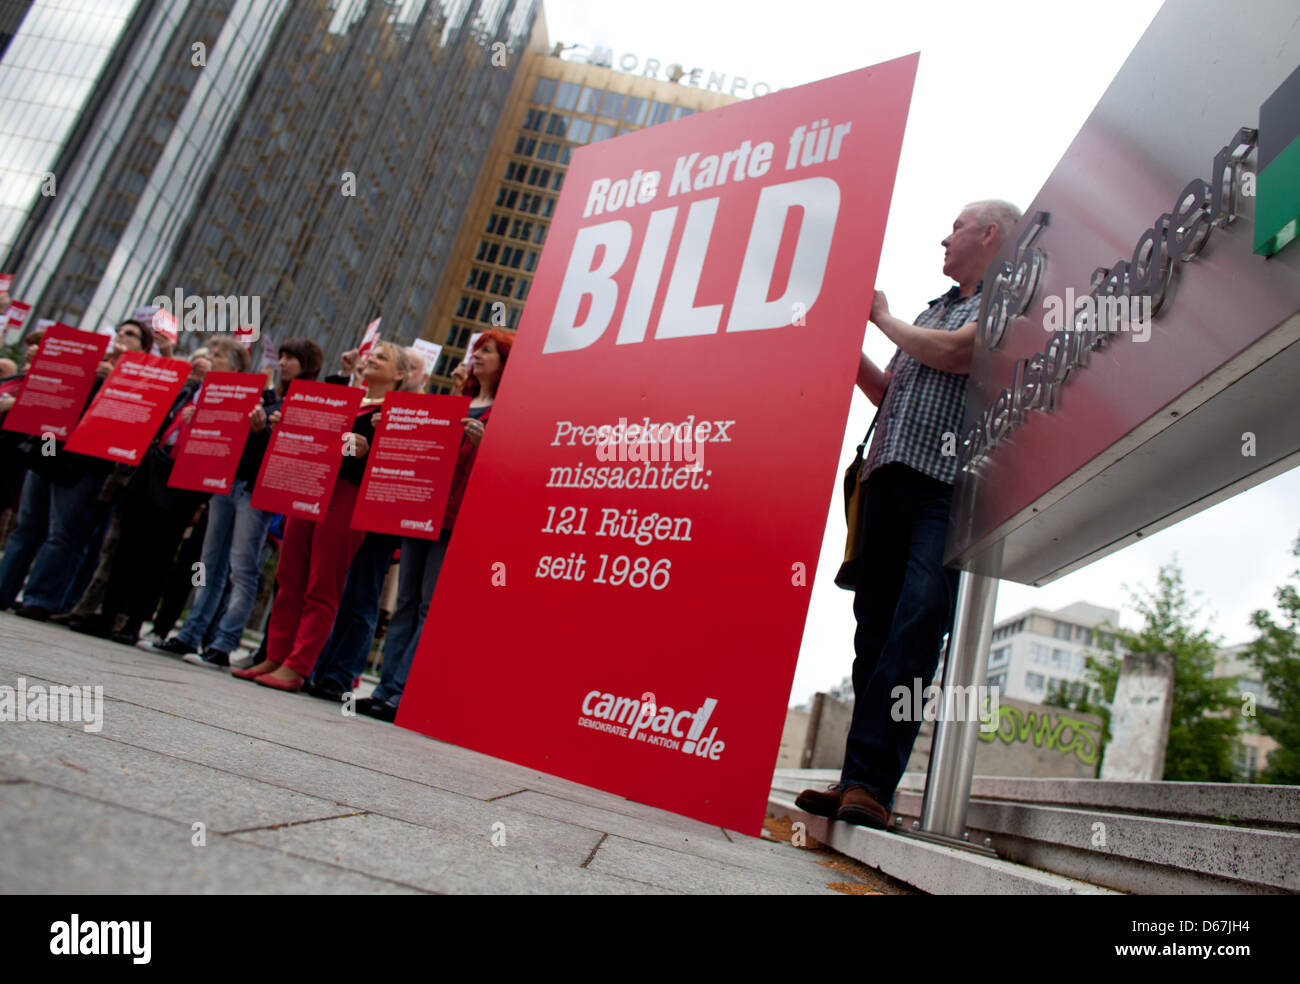 Protesters hold up red cards against BILD, a publication by Springer, at the Springer media headquarters in Berlin, Stock Photo